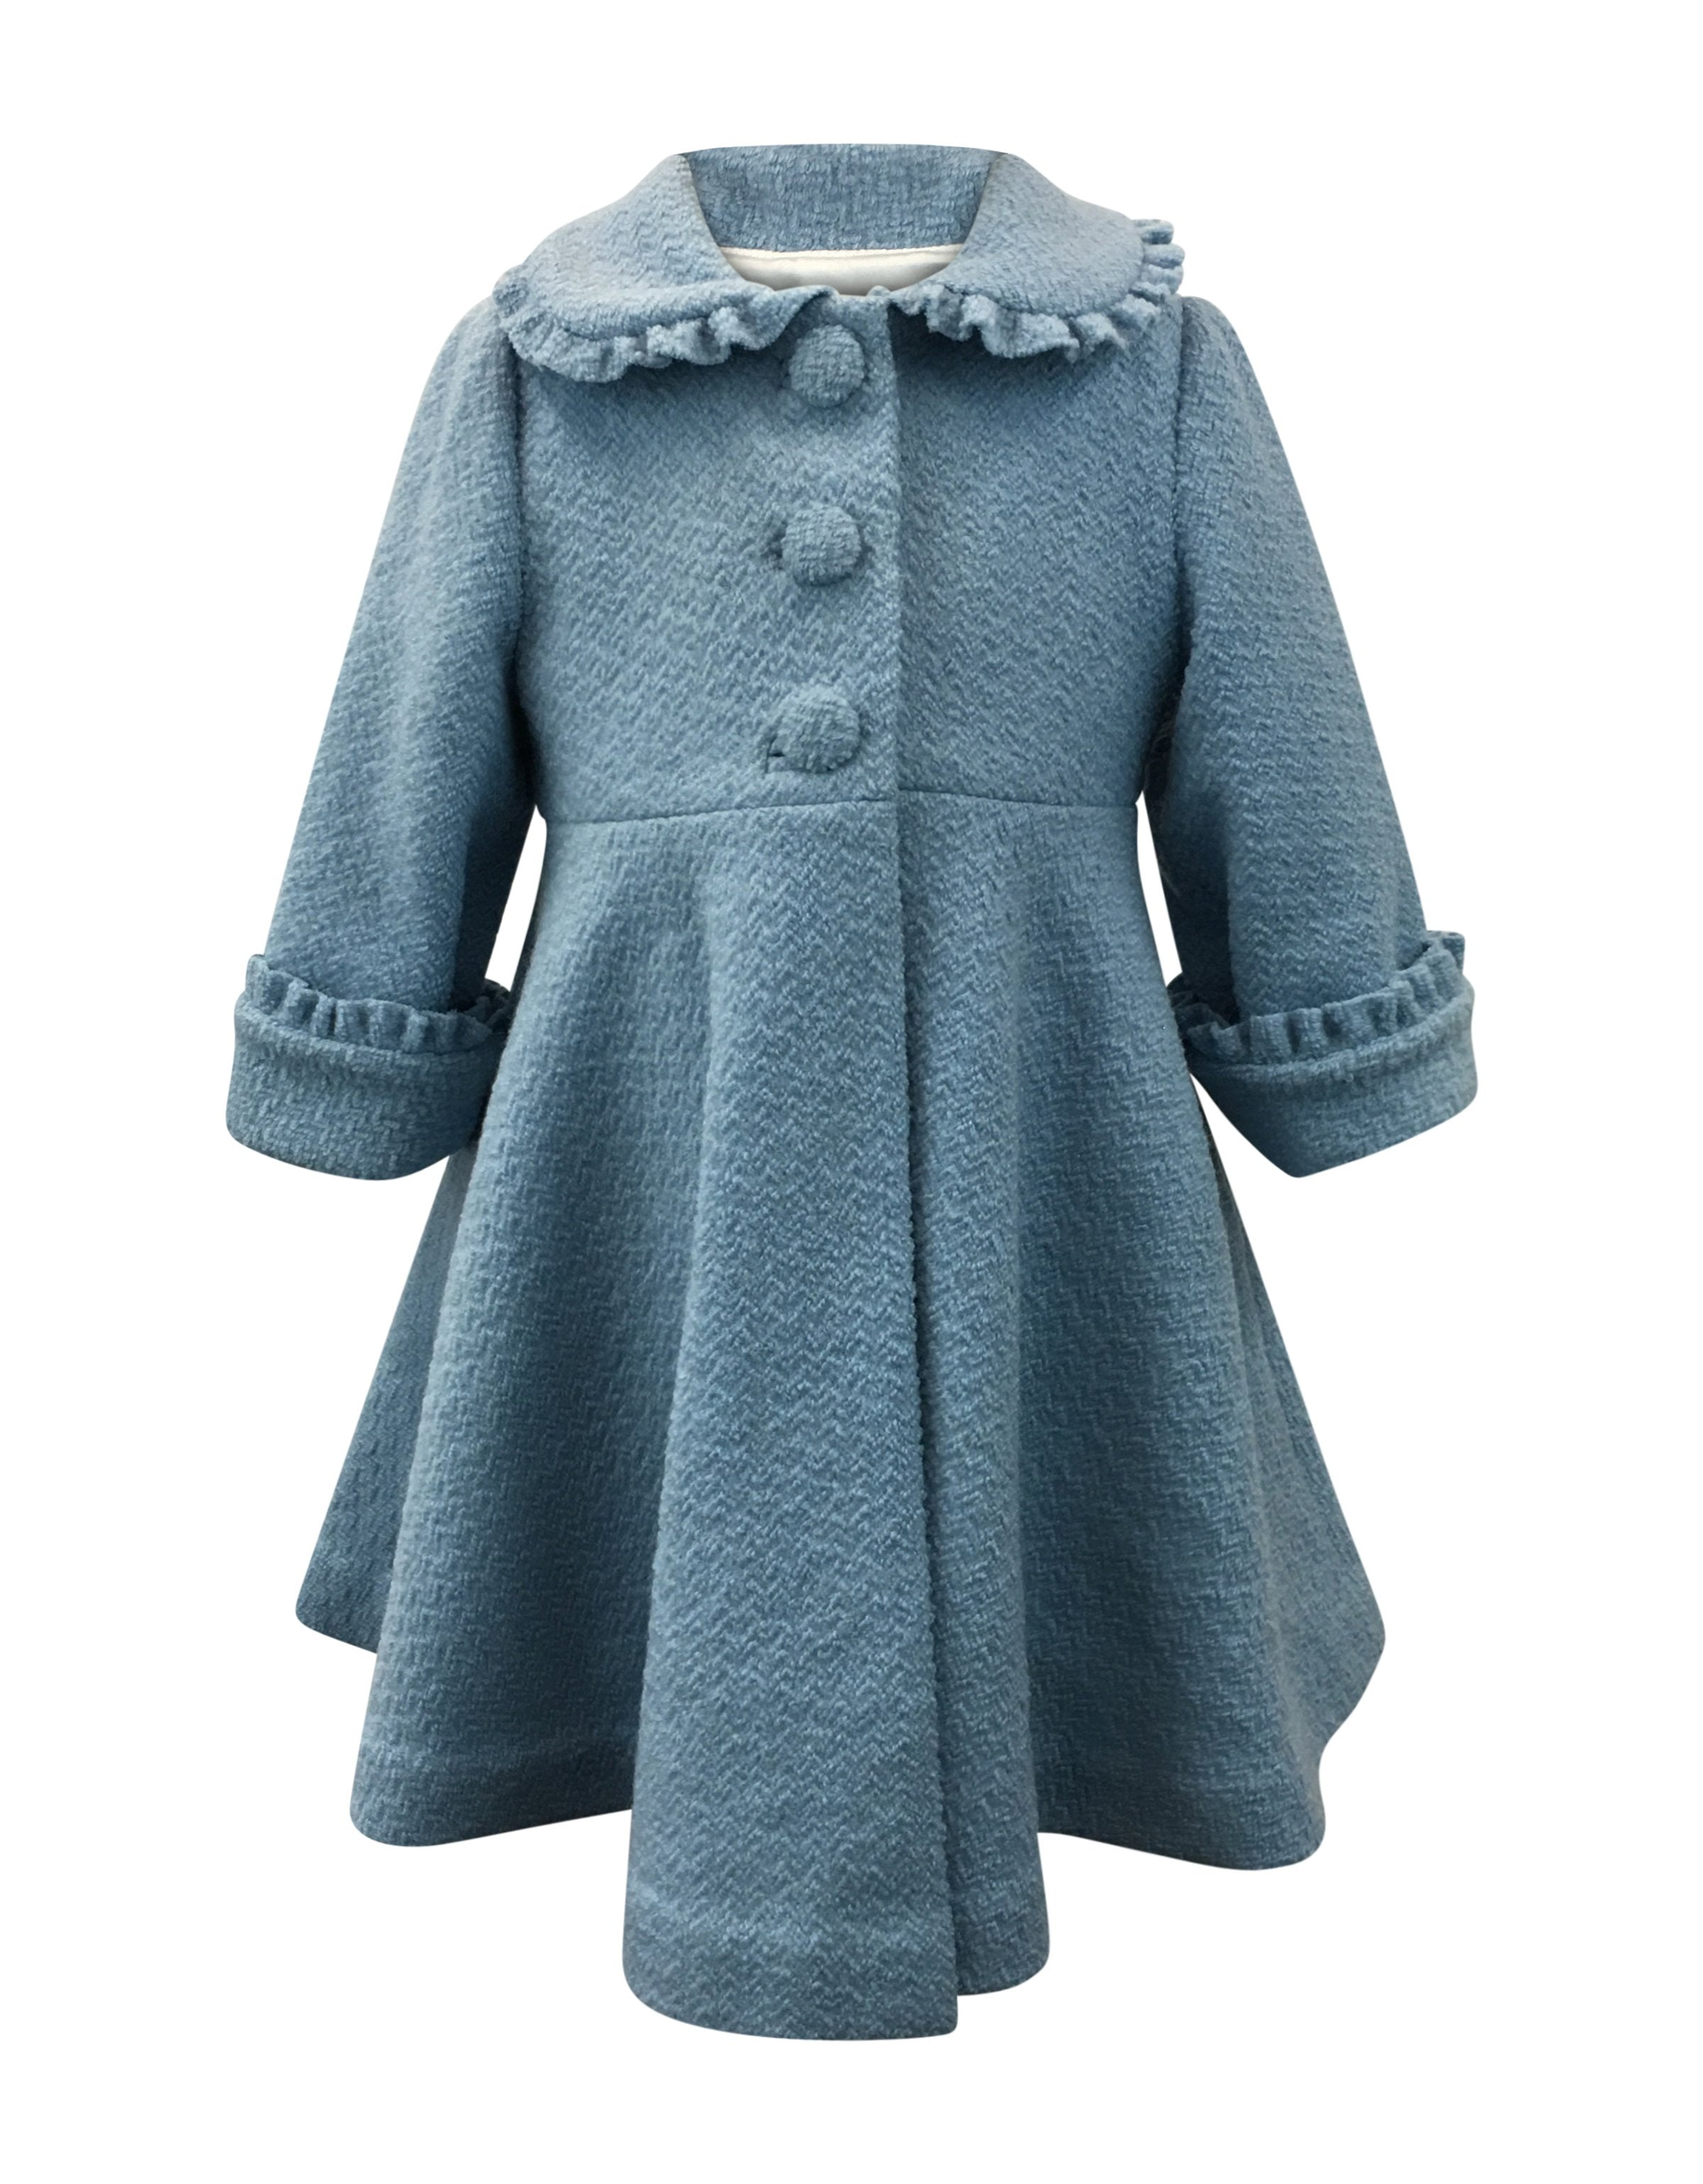 Helena and Harry Girl's Blue Boucle Coat with Ruffles